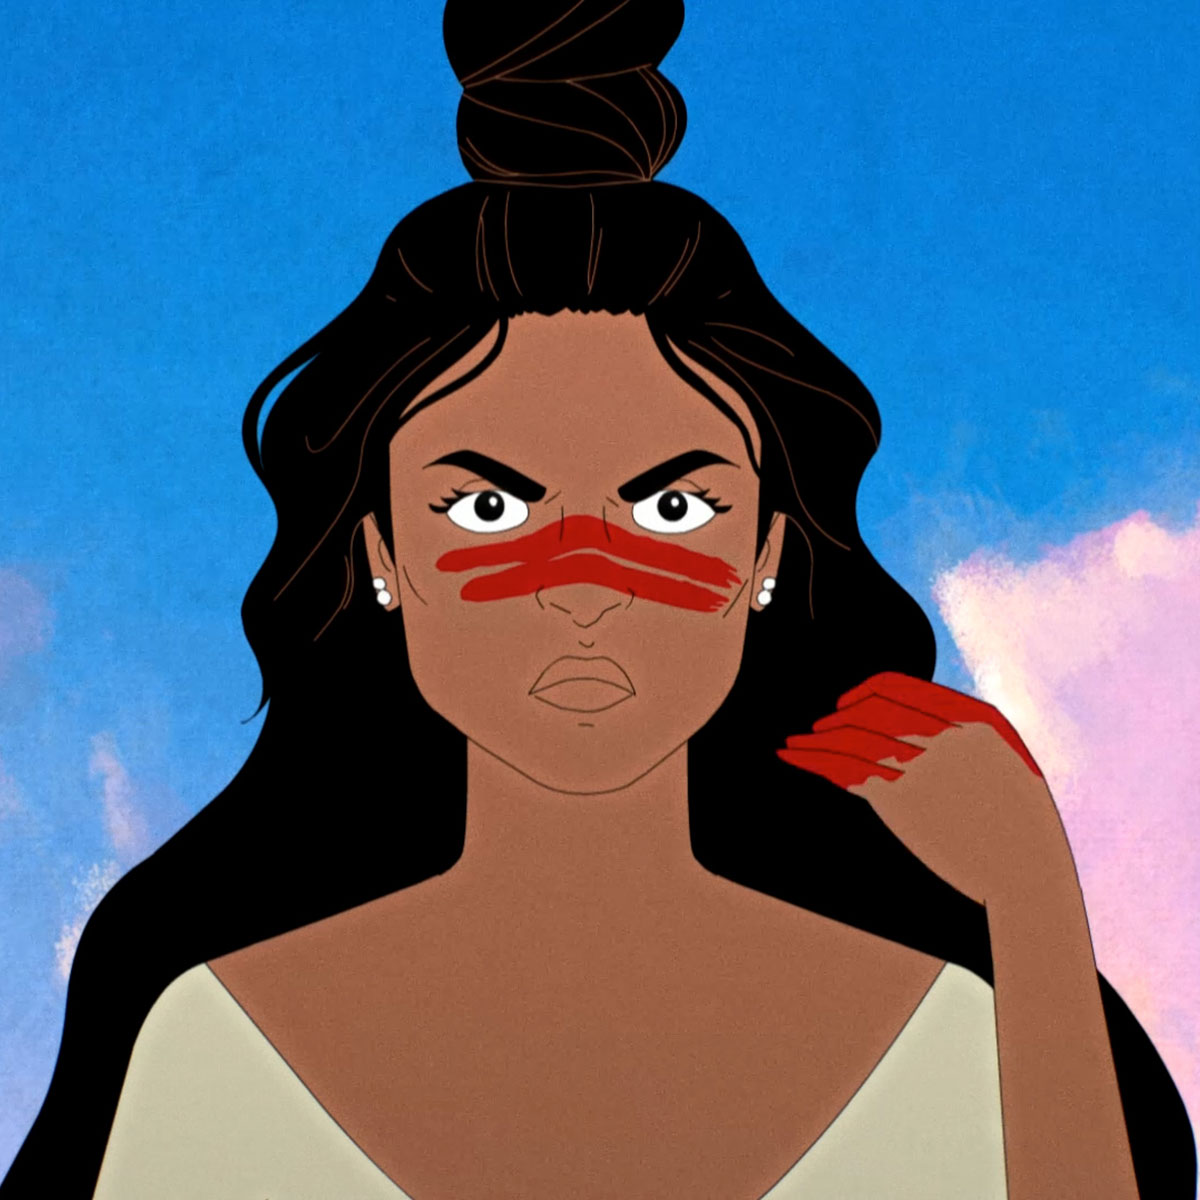 Animated character wiping blood across her upper cheek and nose